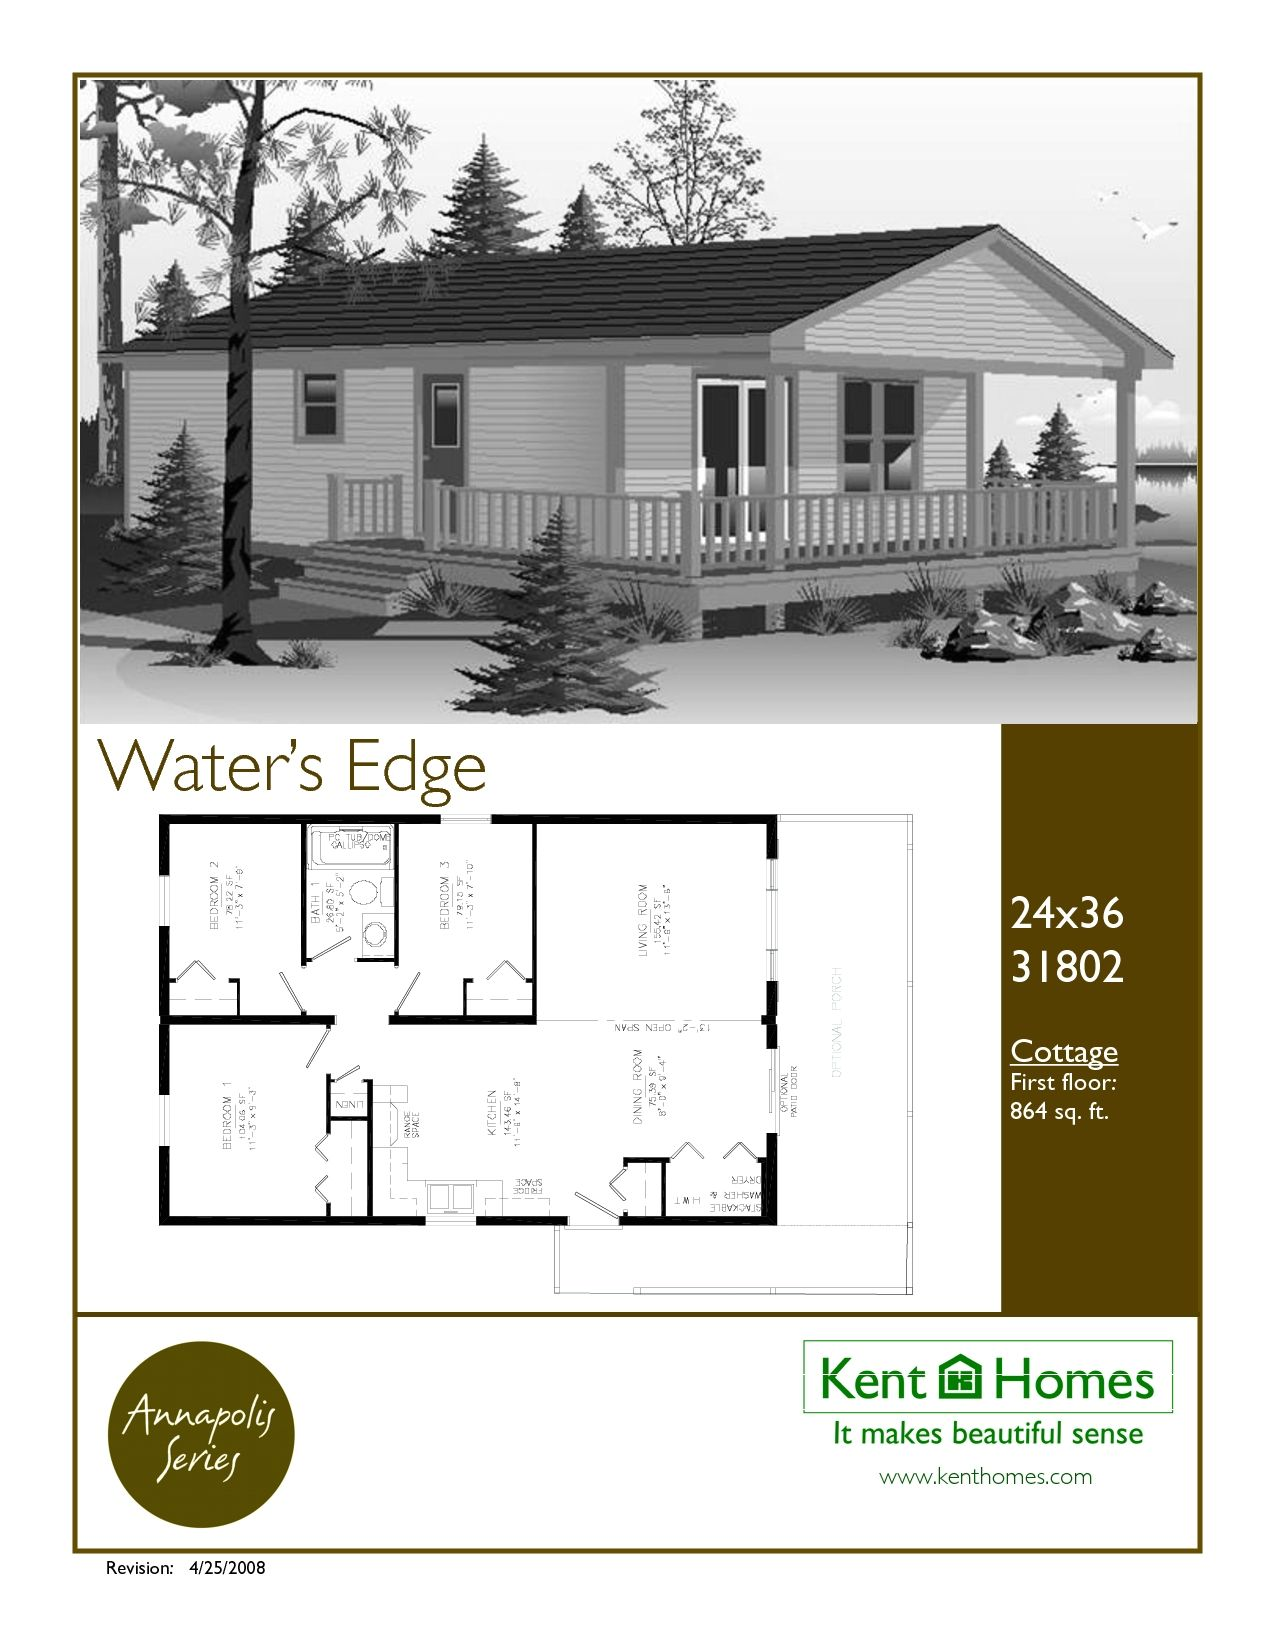 24x36 2 Story House Plans Mobile Home Floor Plans House Plans House Floor Plans